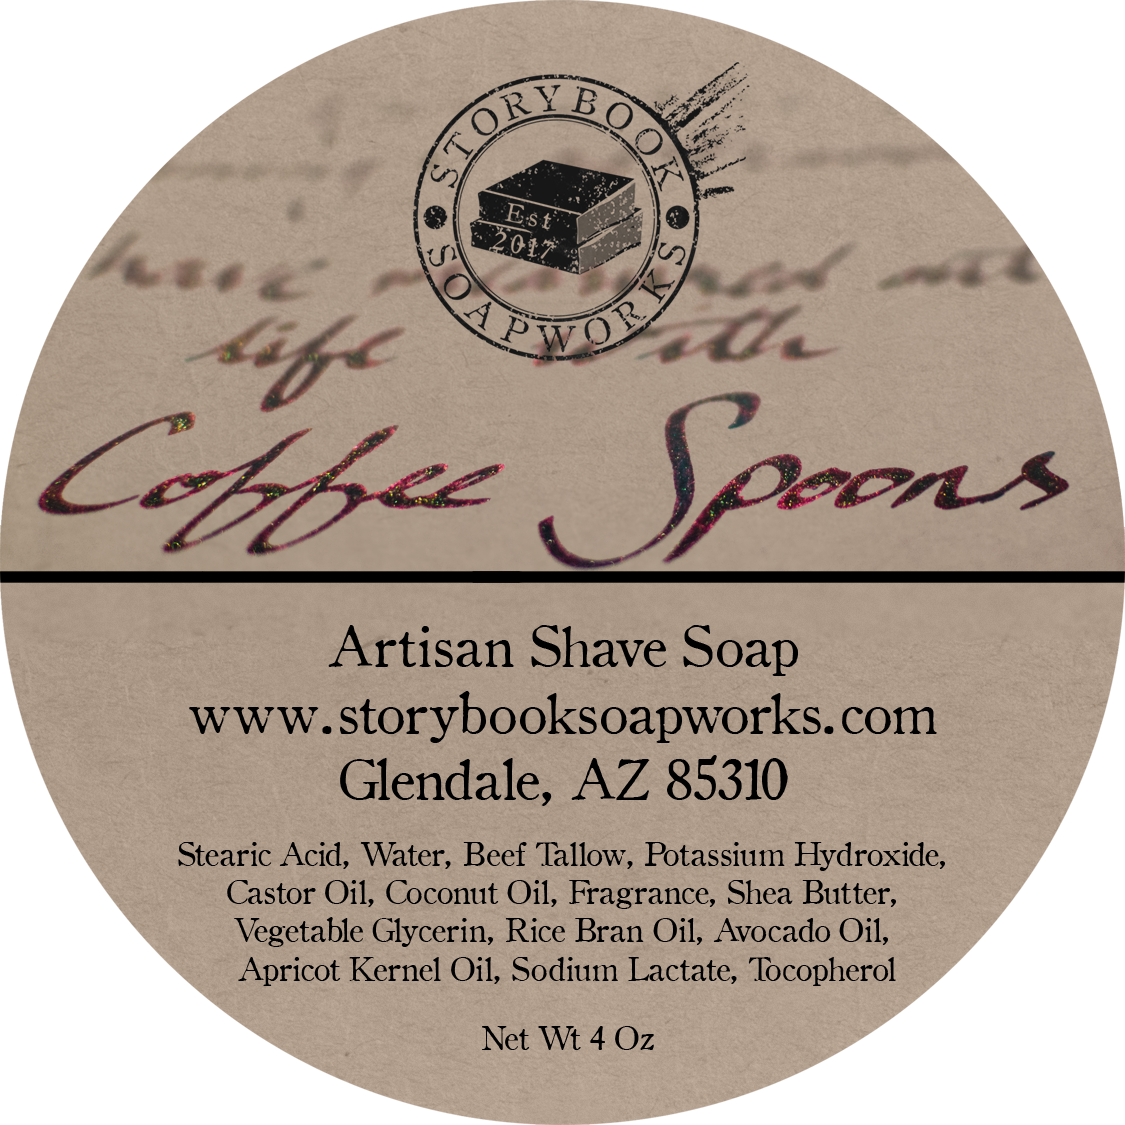 Storybook Soapworks - Coffee Spoons - Soap image